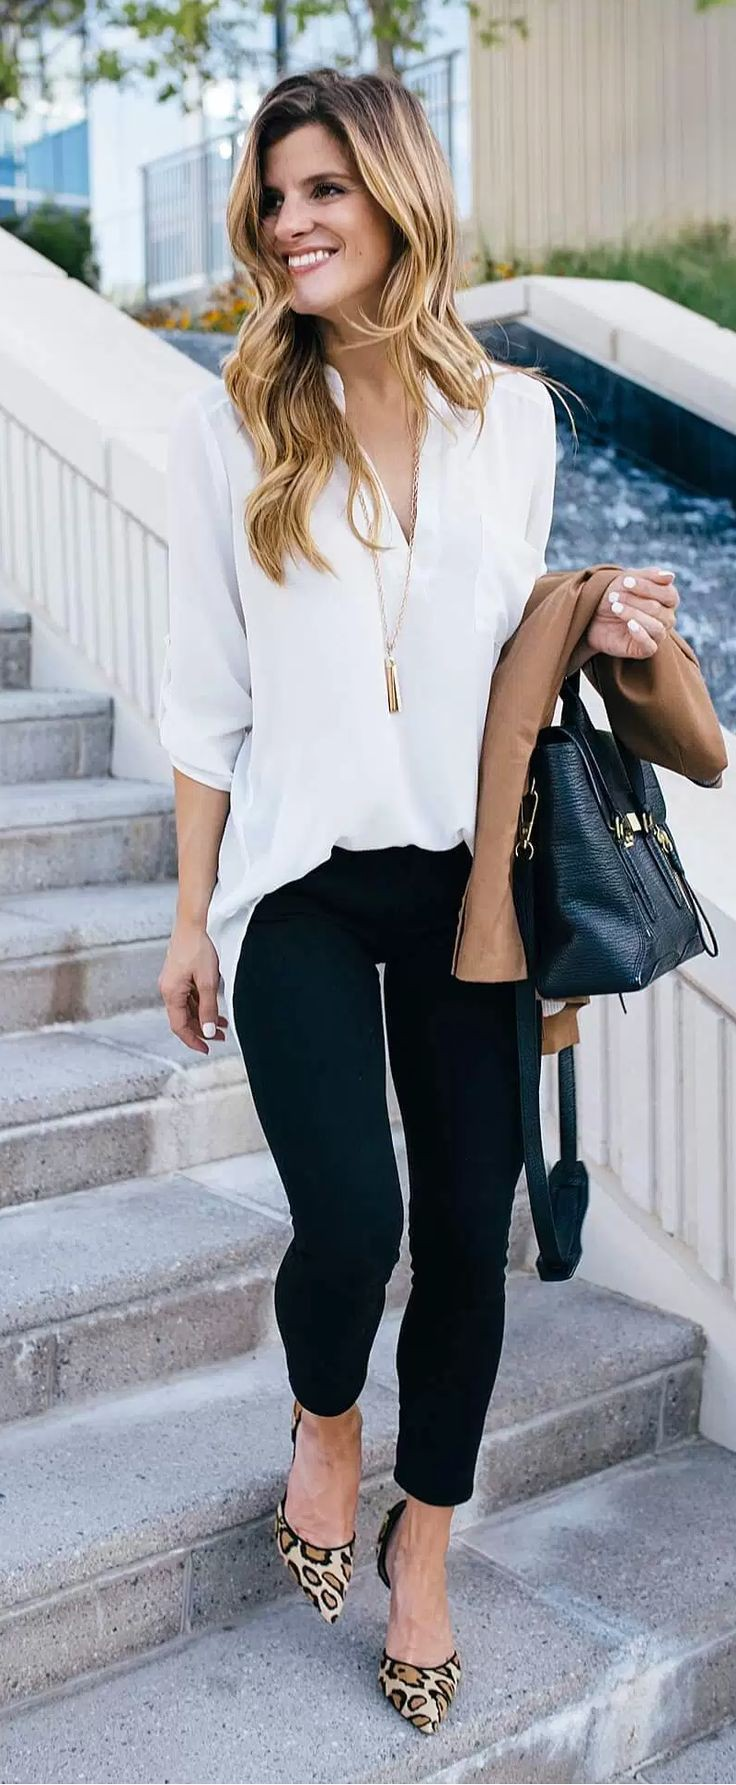 Business Outfit Frau skinny jeans | Fashion, Business casual